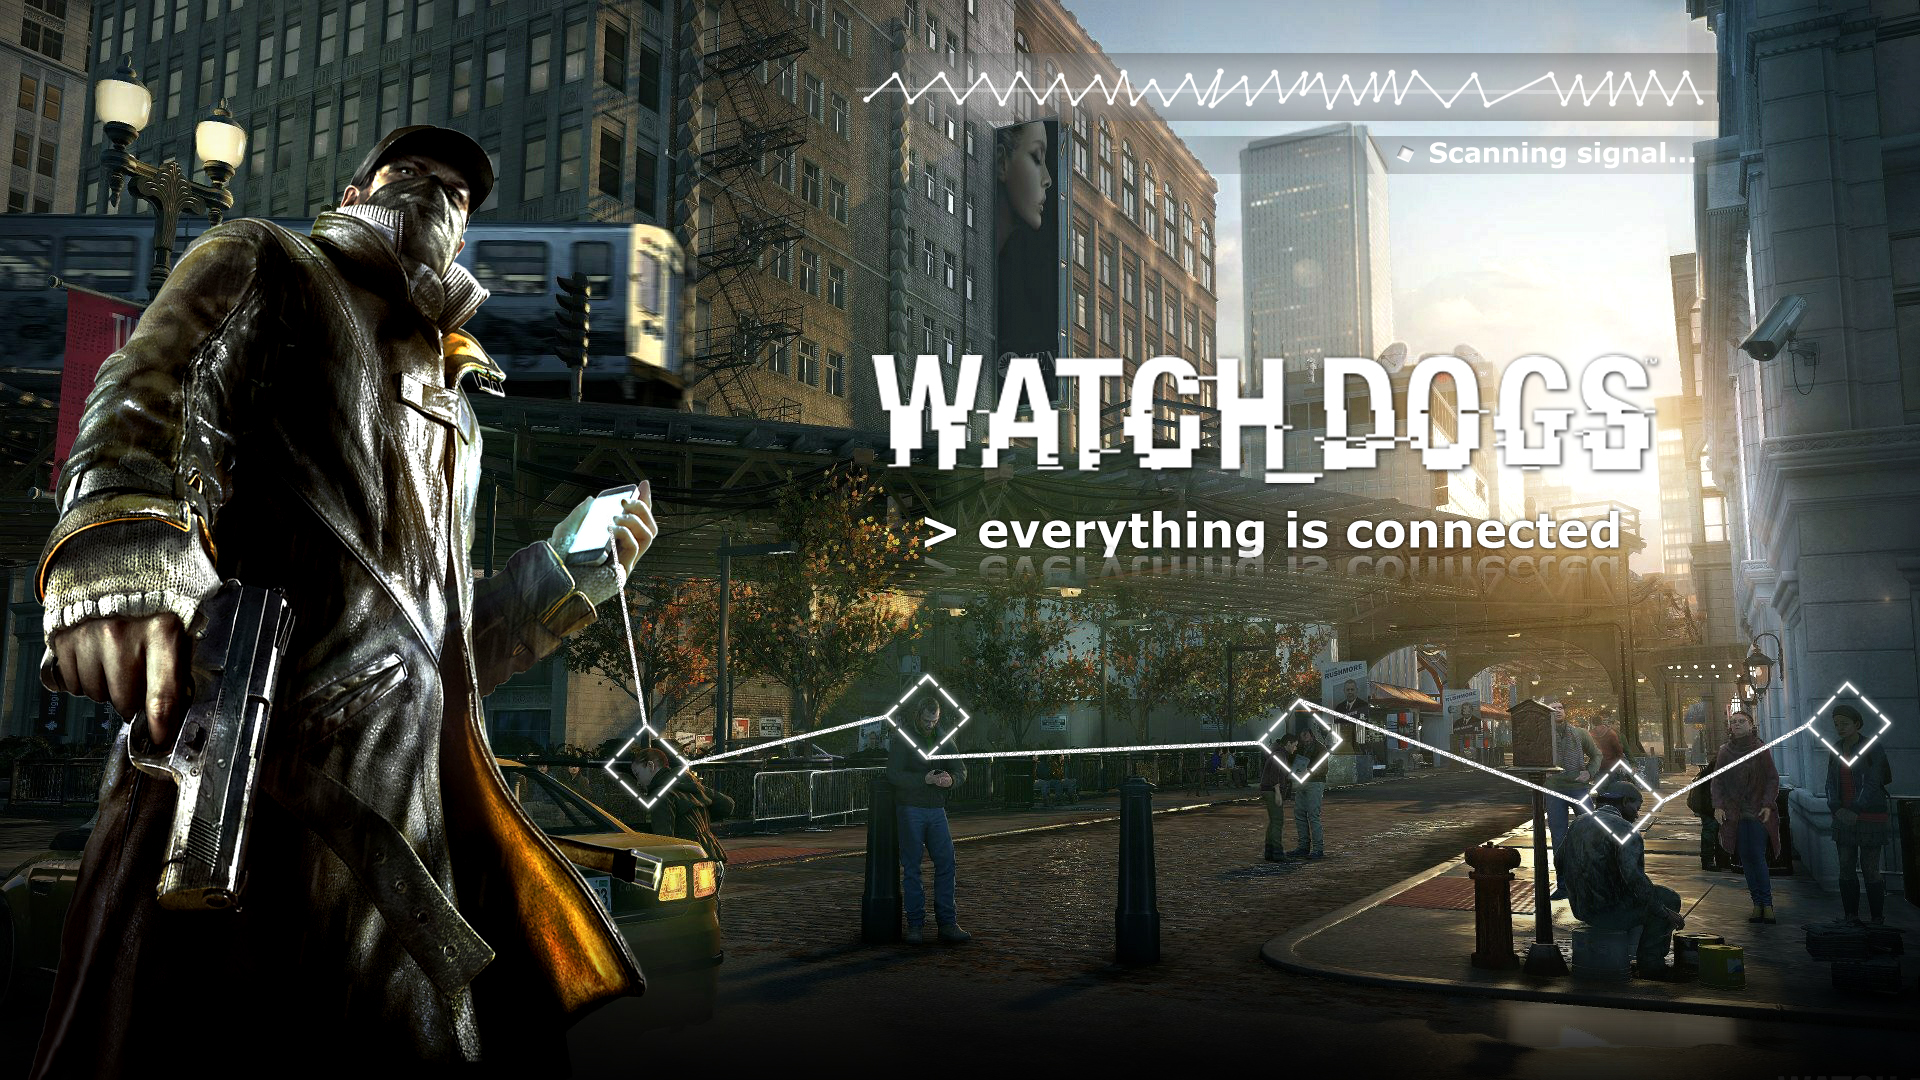 Watch_dogs_wall_1